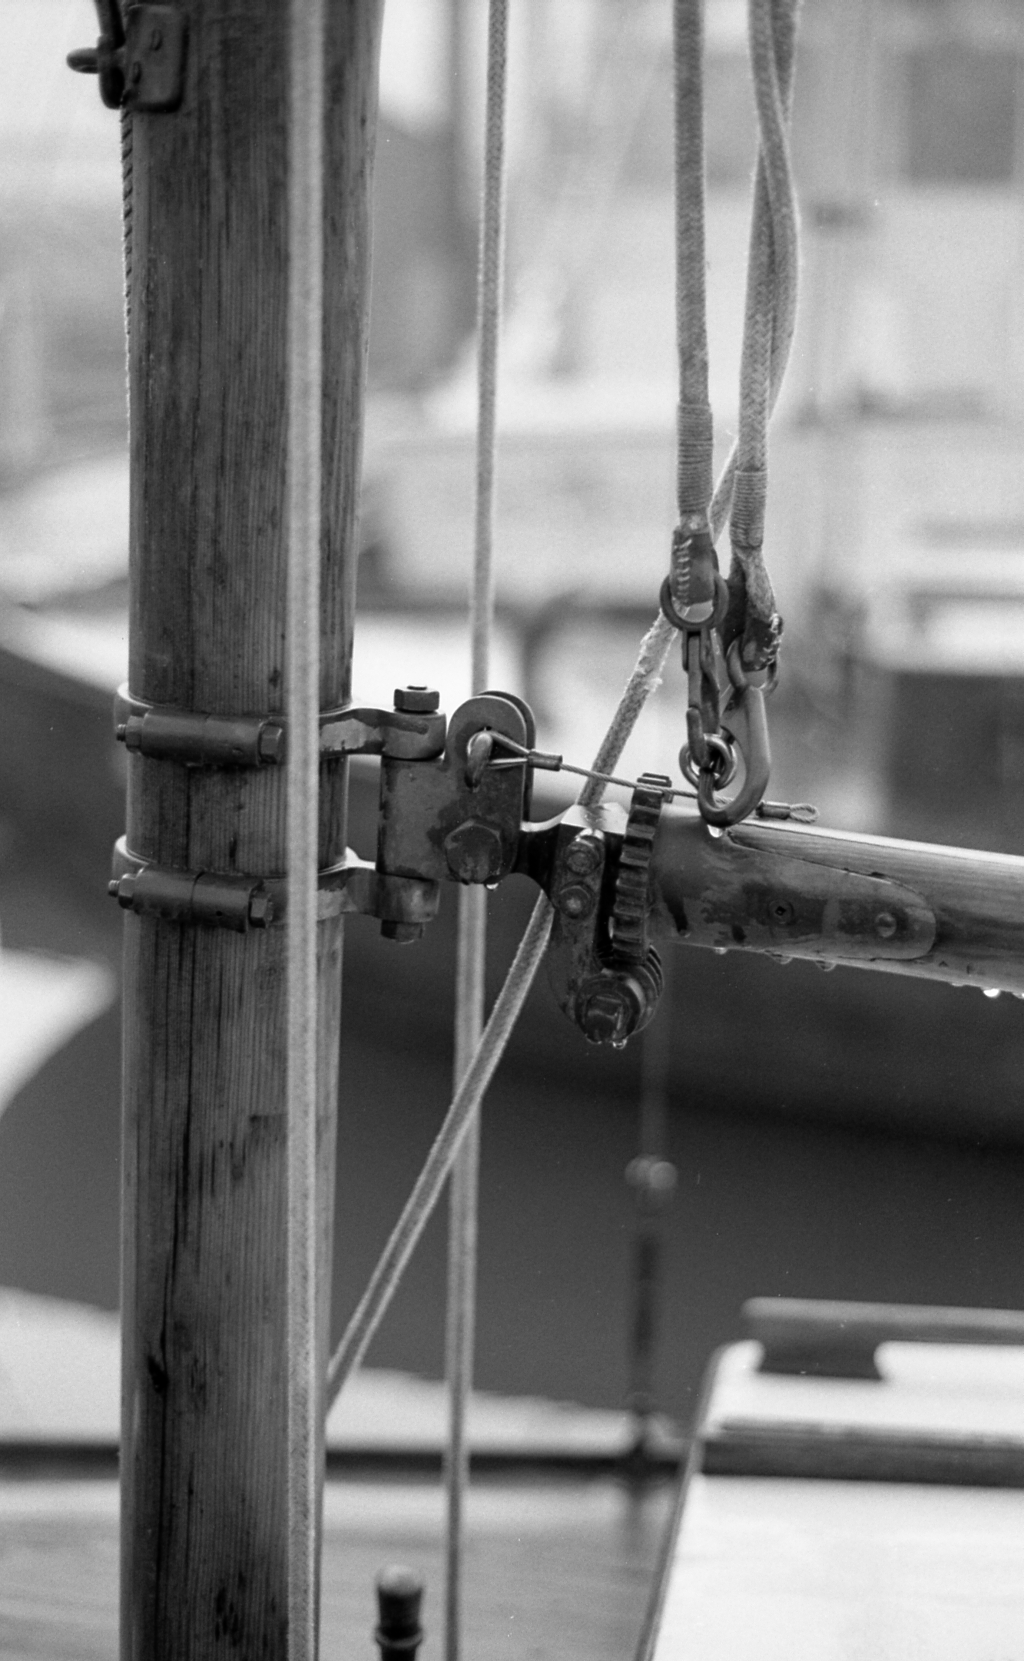 woodenBoat-spxi-400tx-004-1024.jpg